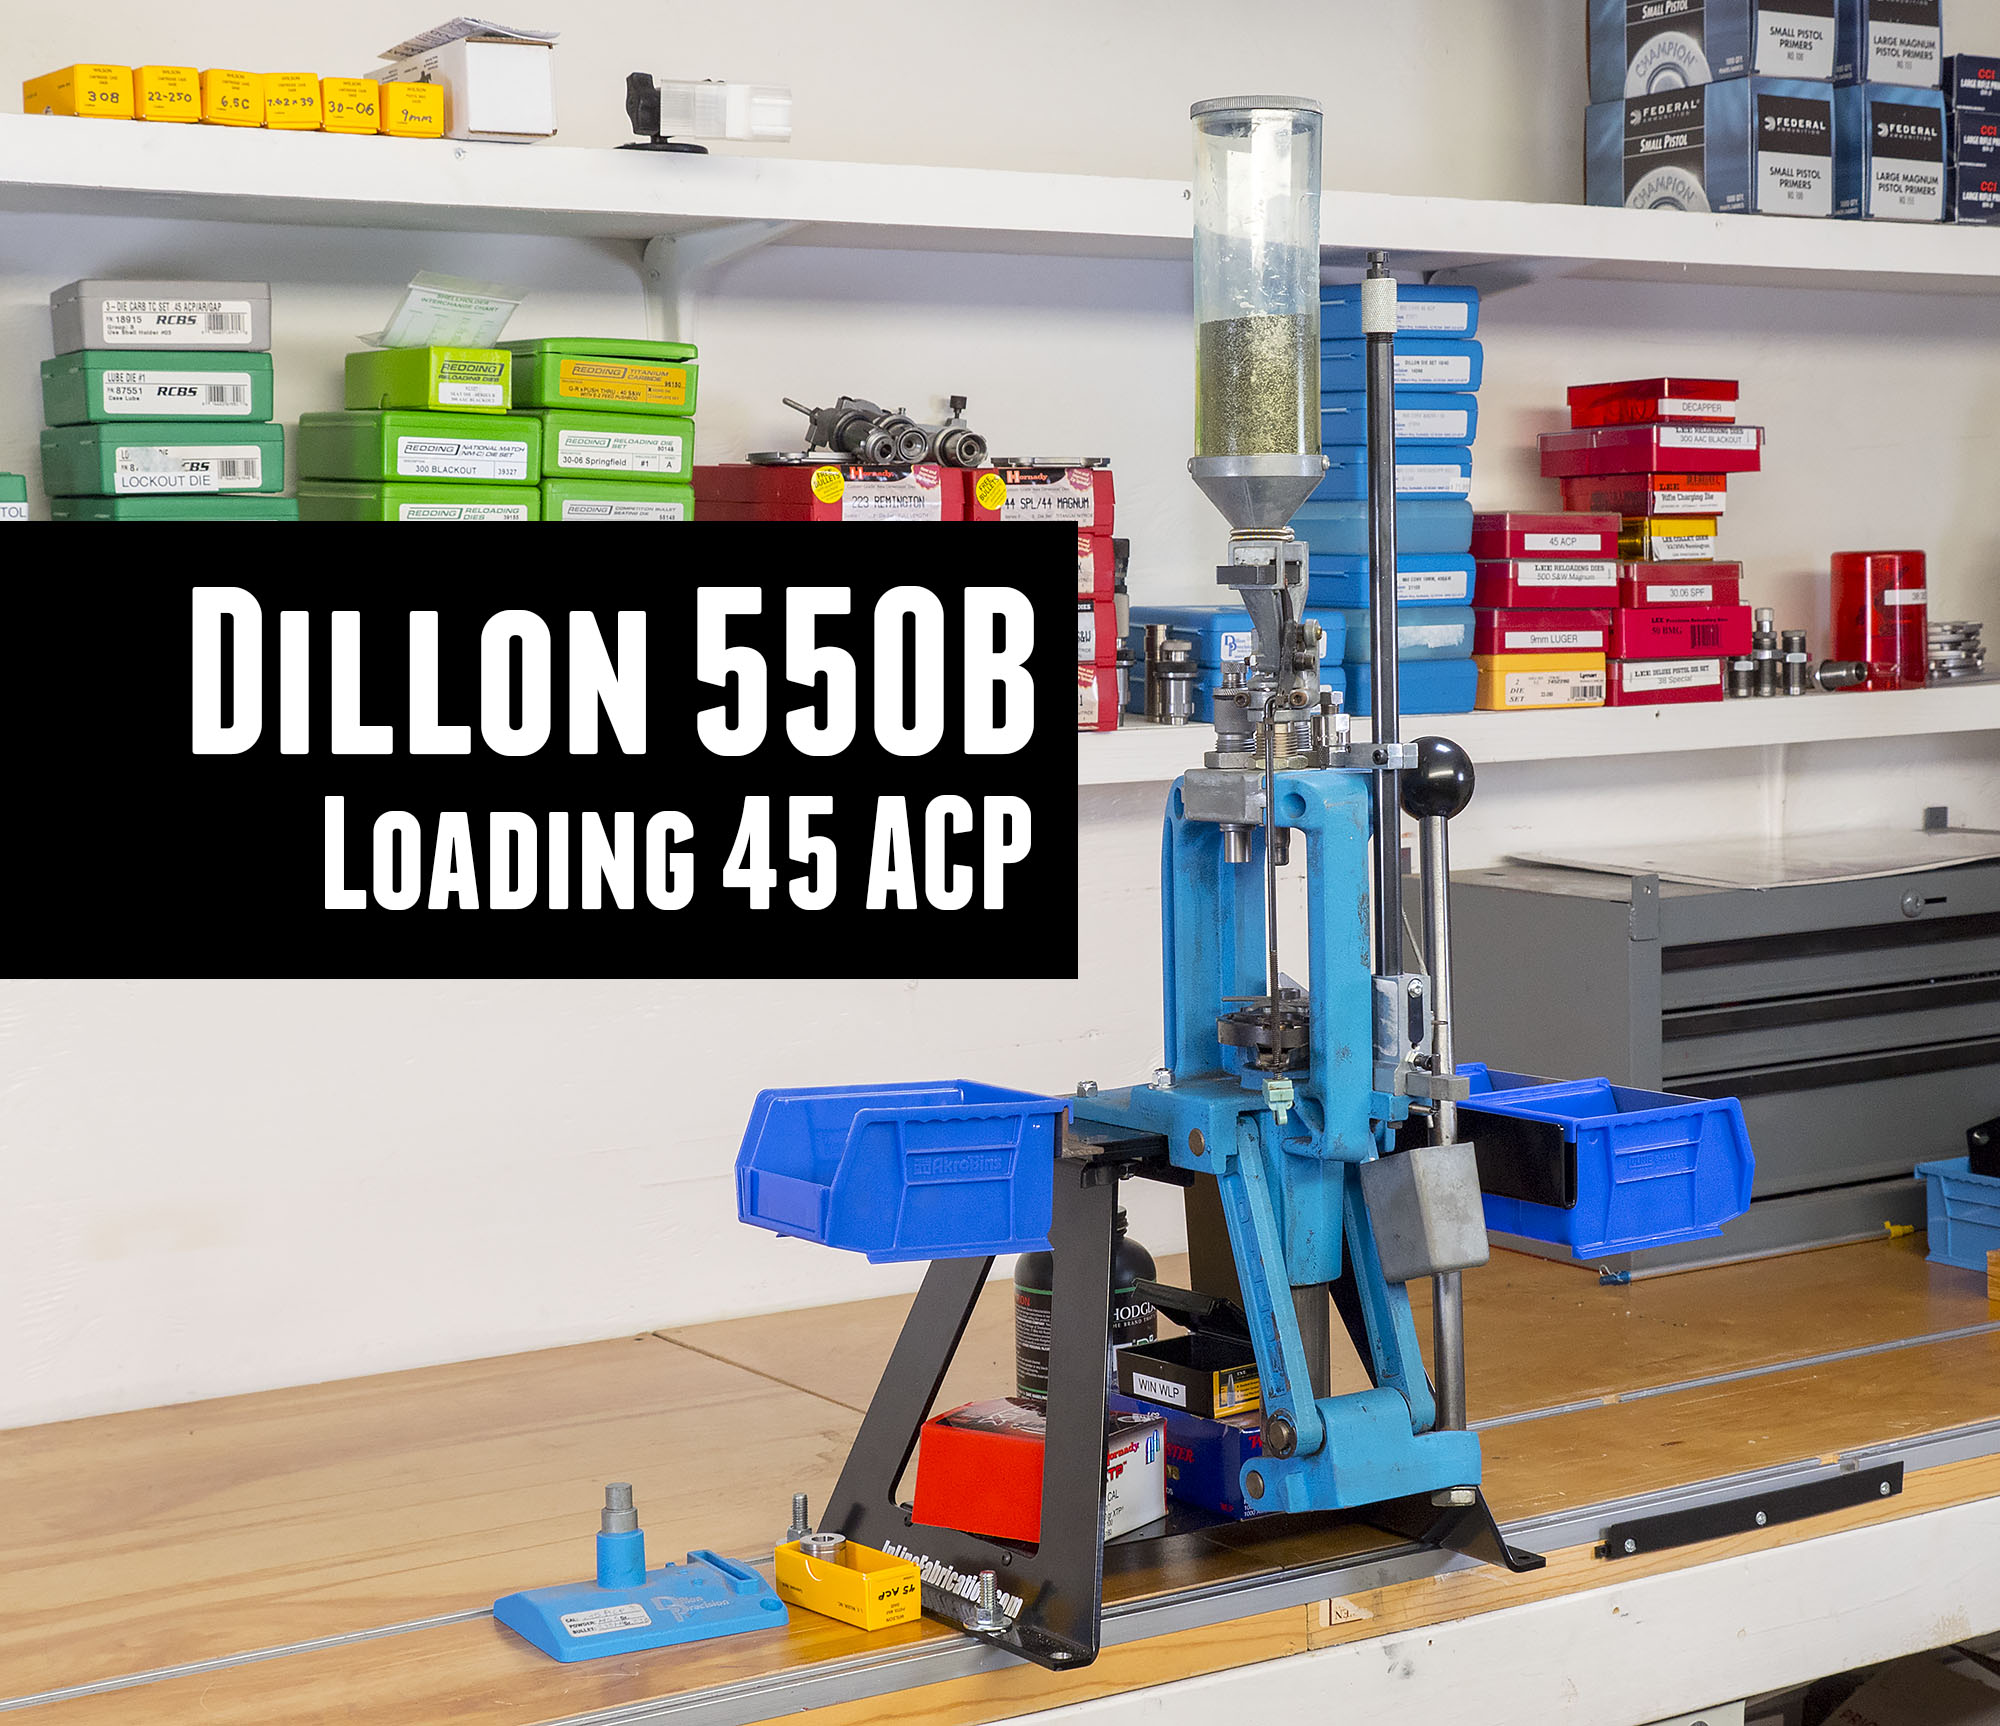 Reloading 45 ACP with the Dillon 550B